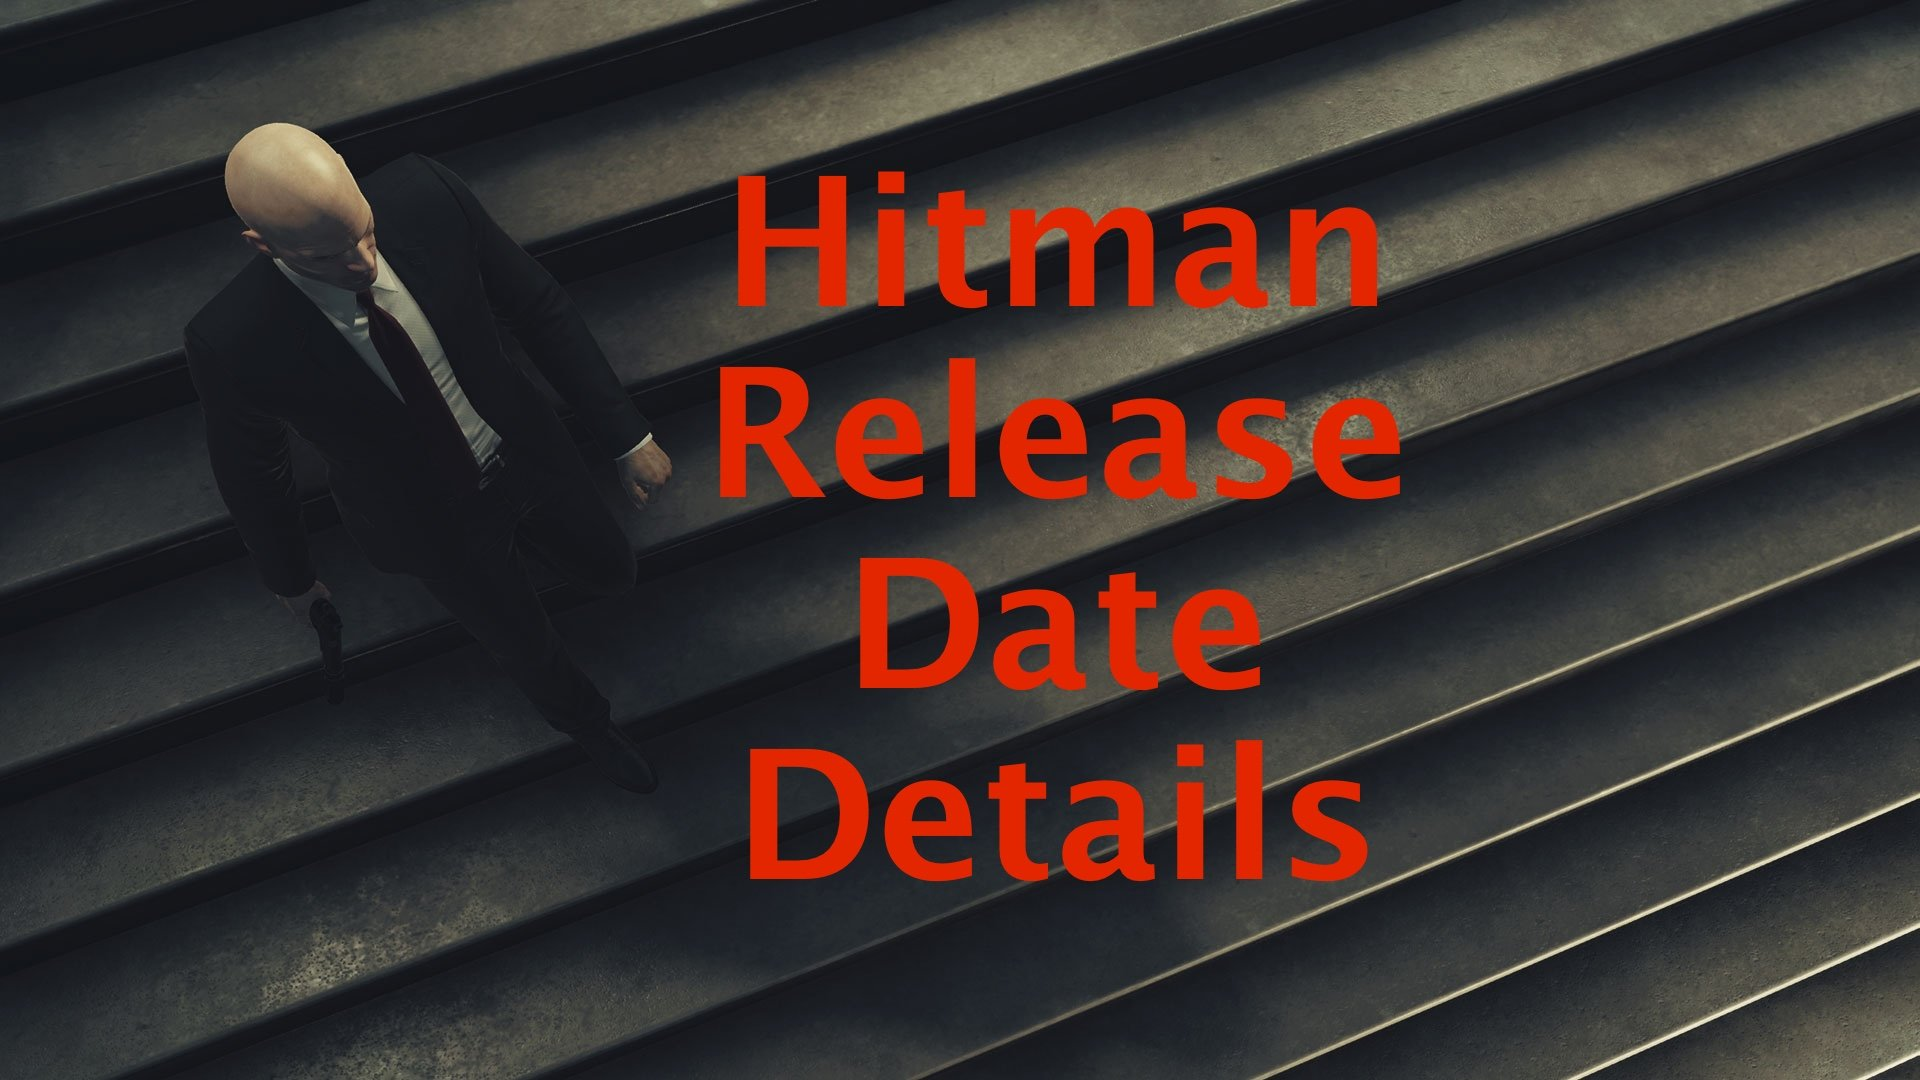 What gamers need to know about the Hitman release date.